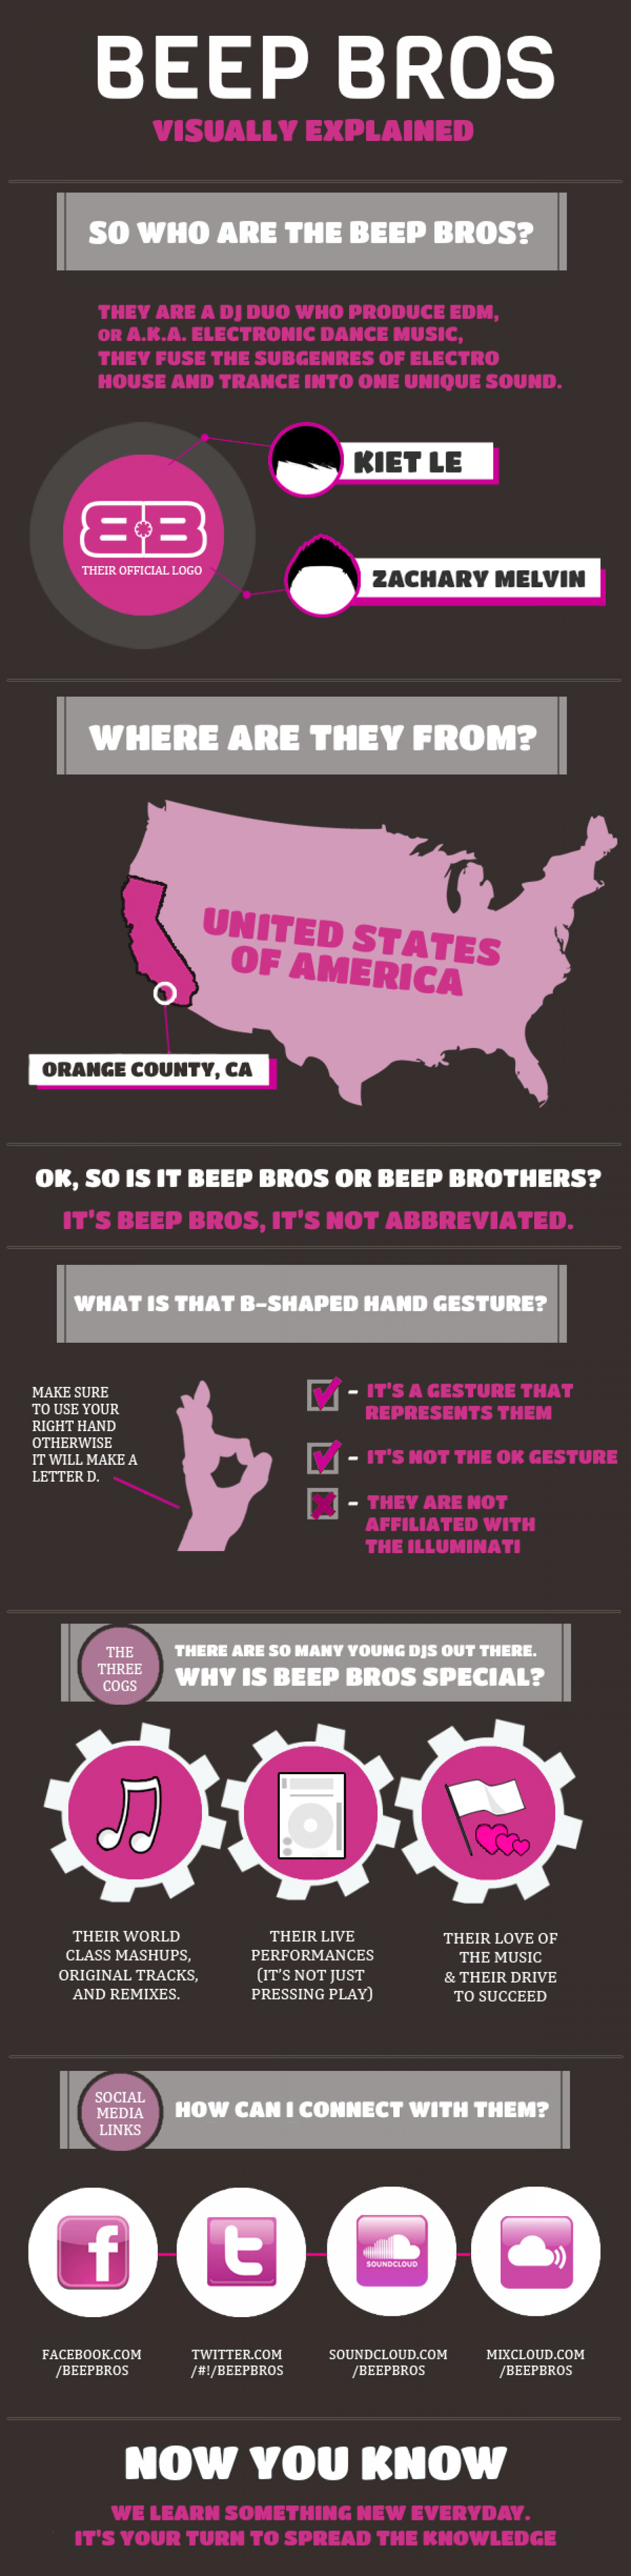 BEEP BROS Visualized Infographic